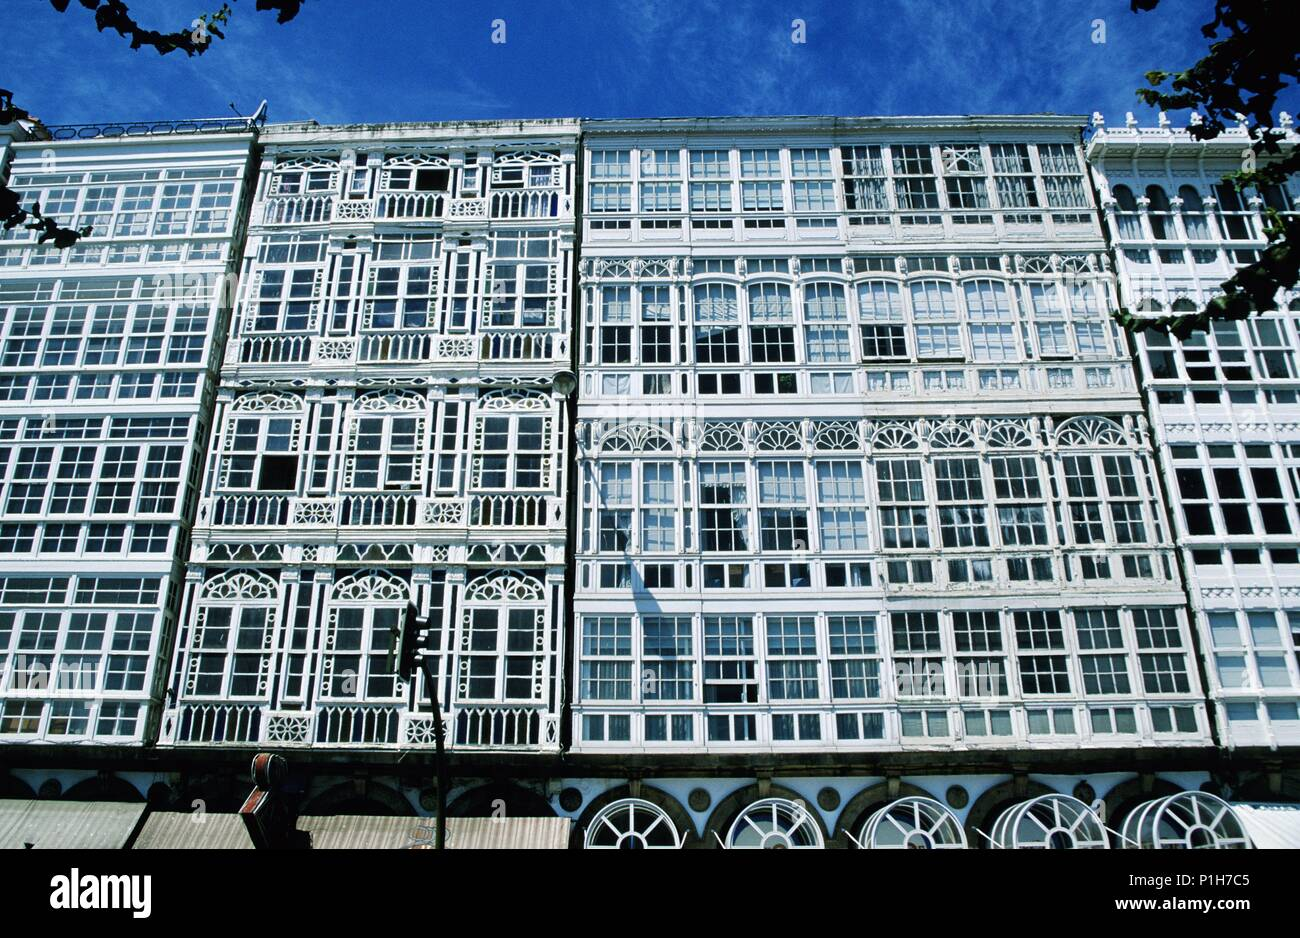 Galerias La Coruña Spain High Resolution Stock Photography And Images Alamy